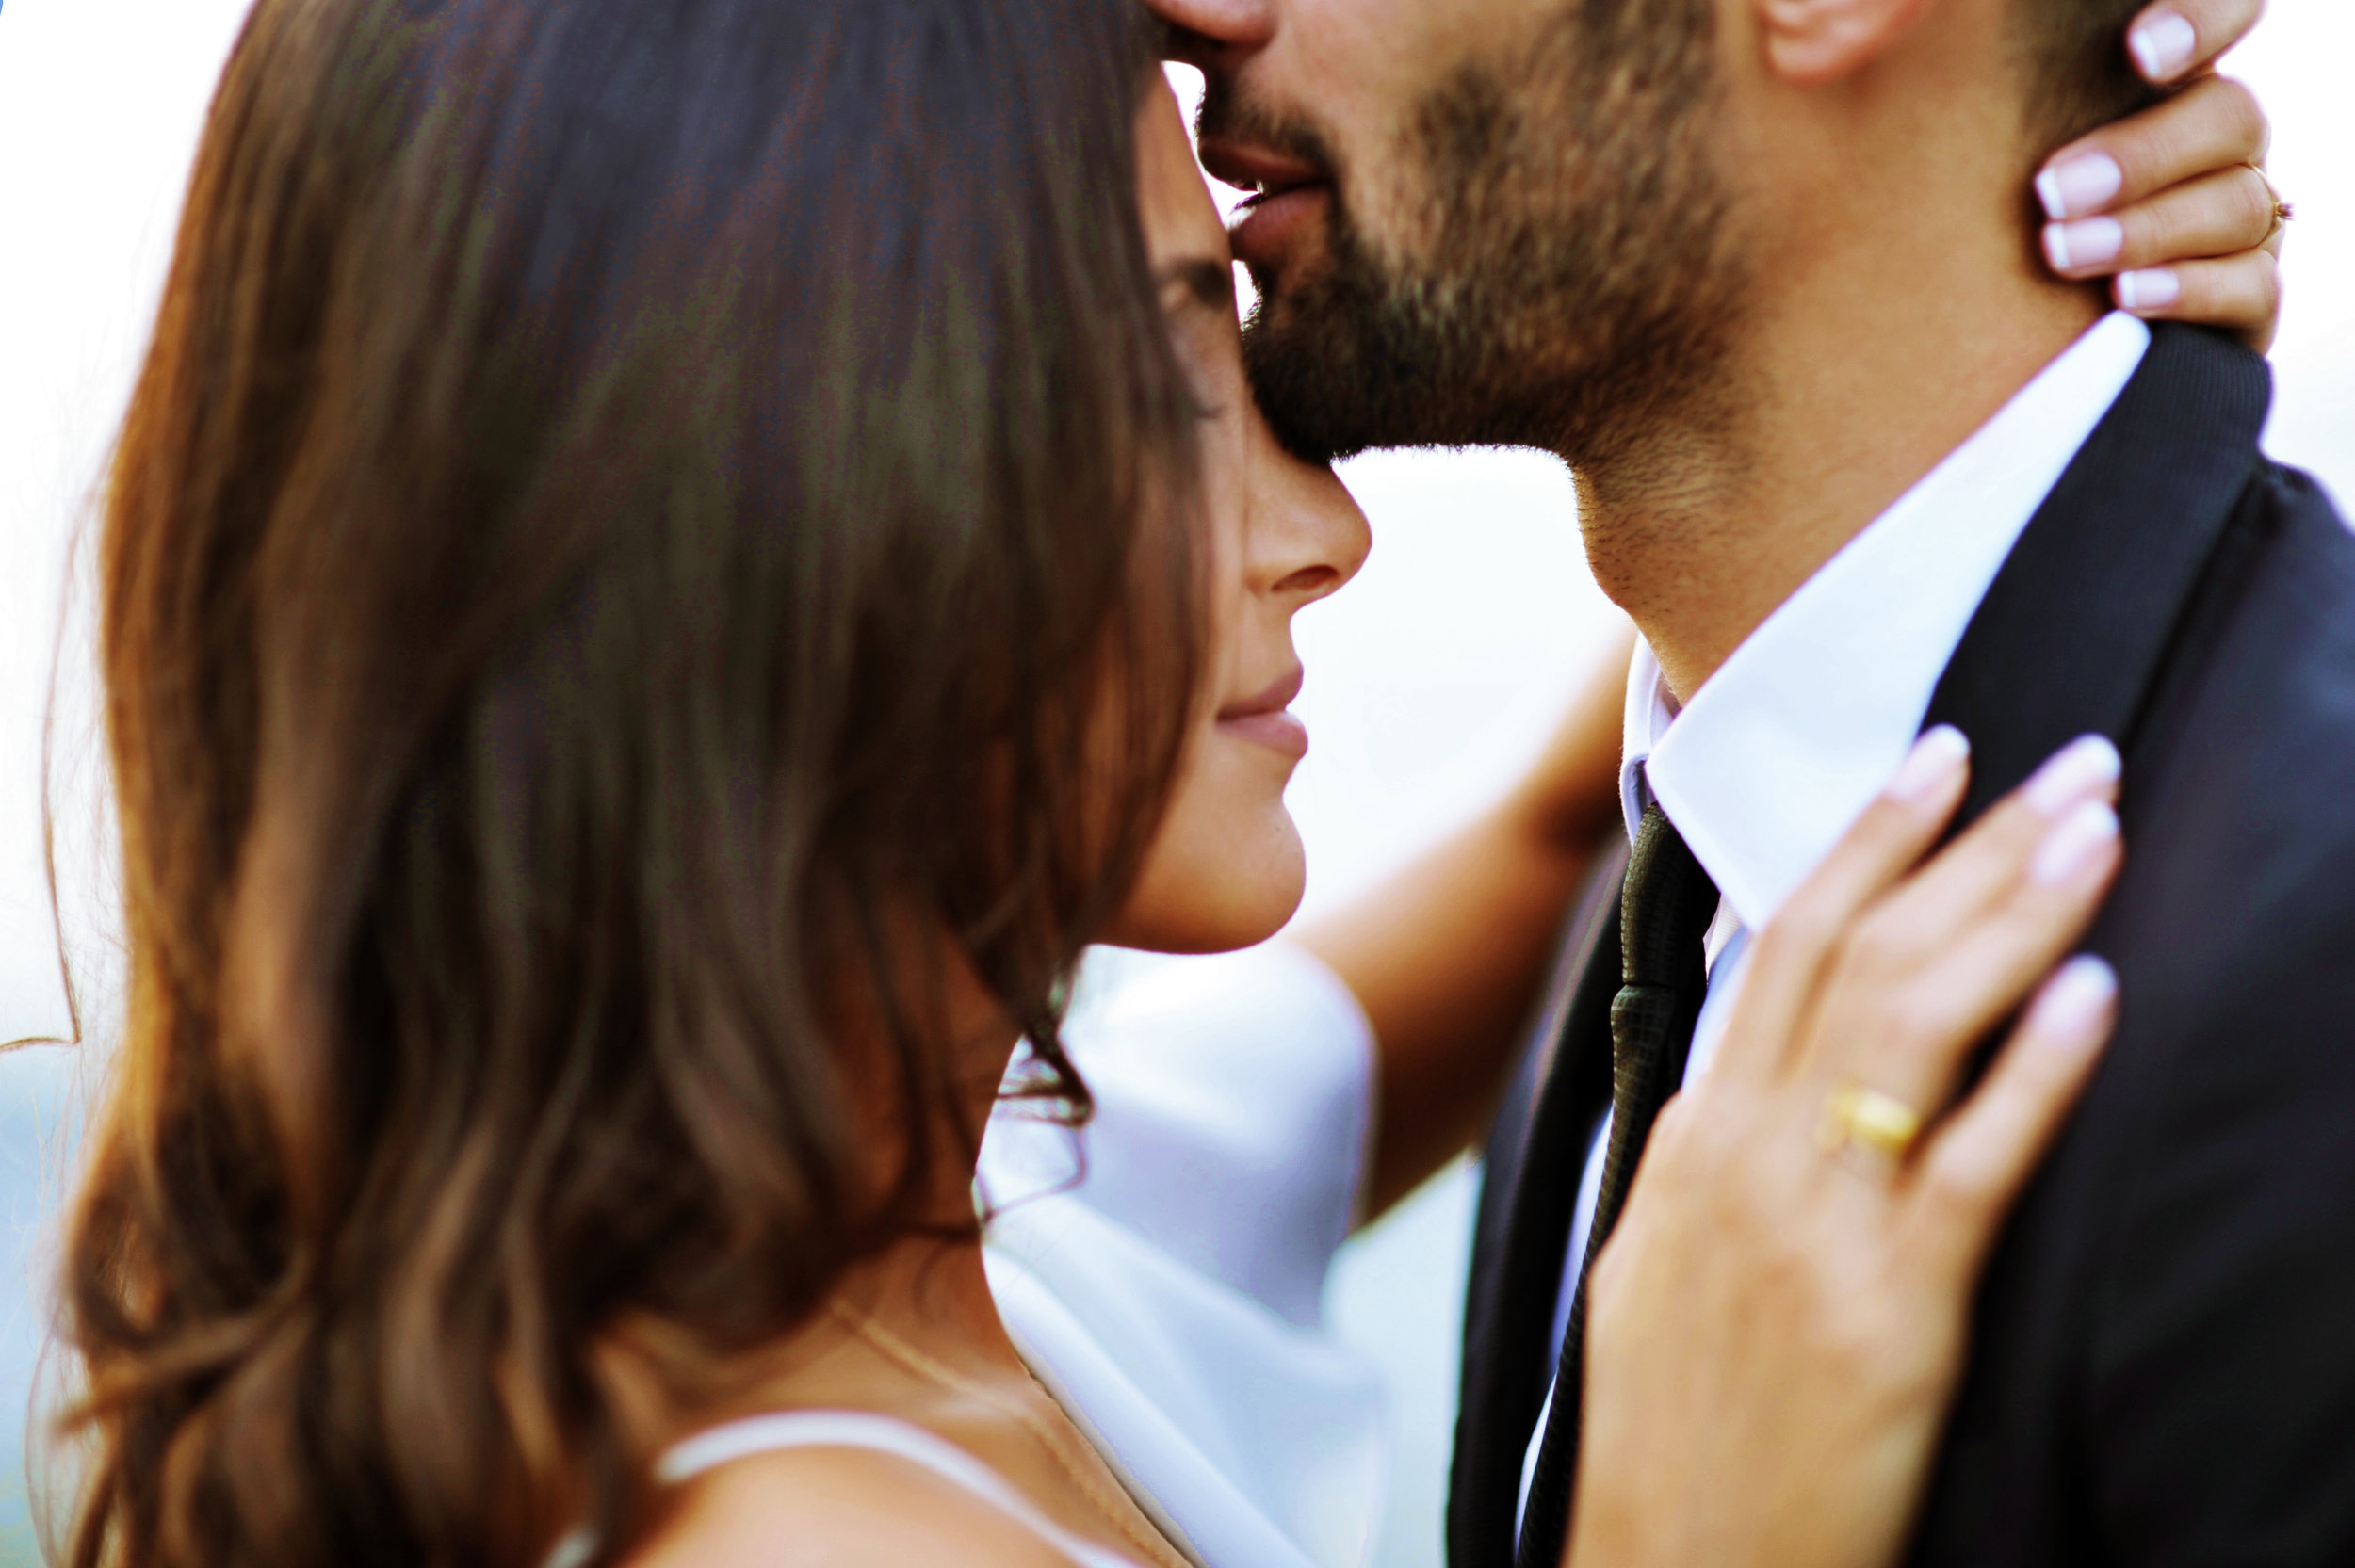 Did you know? Our pupils widen when we're attracted to someone. -